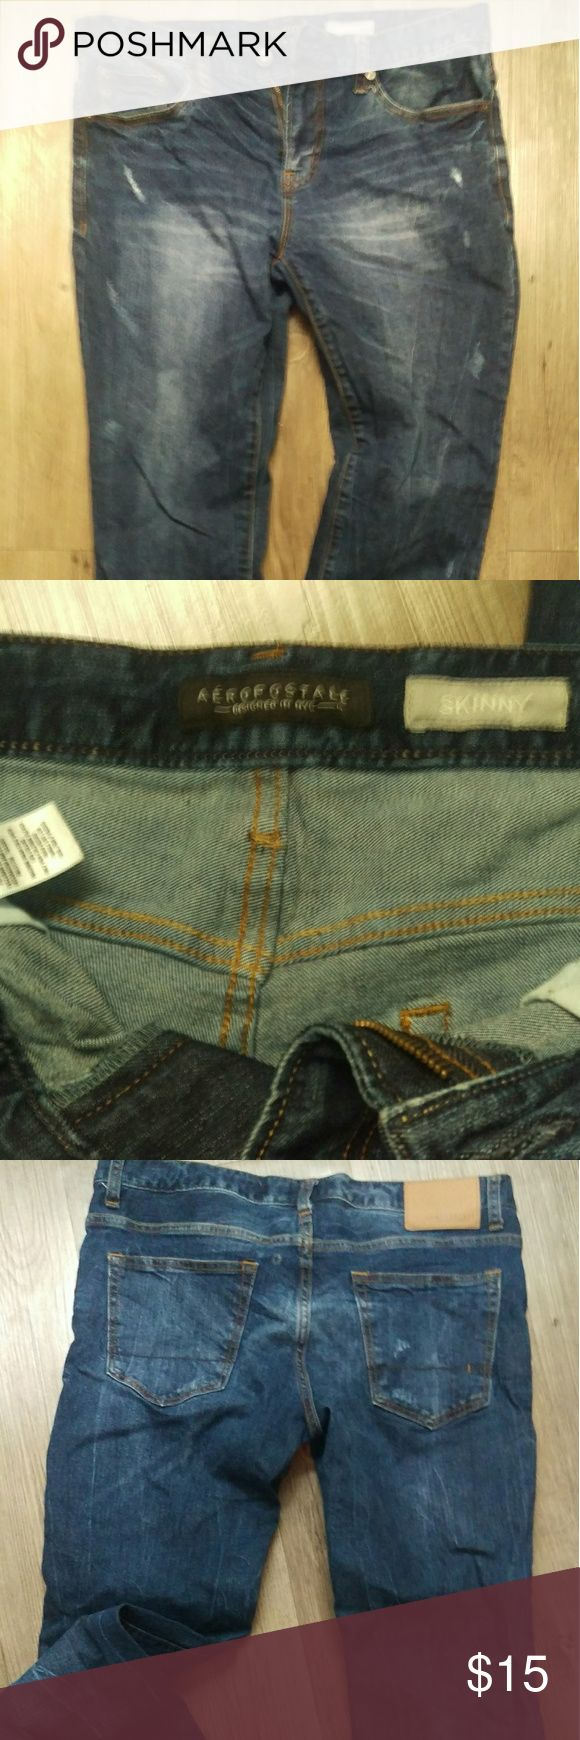 """Men's Aeropostale Skinny Jean Flex fabric, brilliant blue, 32"""" inseam, I maybe wore them once but I wasn't thrilled about the fit. I'm a long fellow so I can be finicky with jeans. Aeropostale Jeans Skinny"""